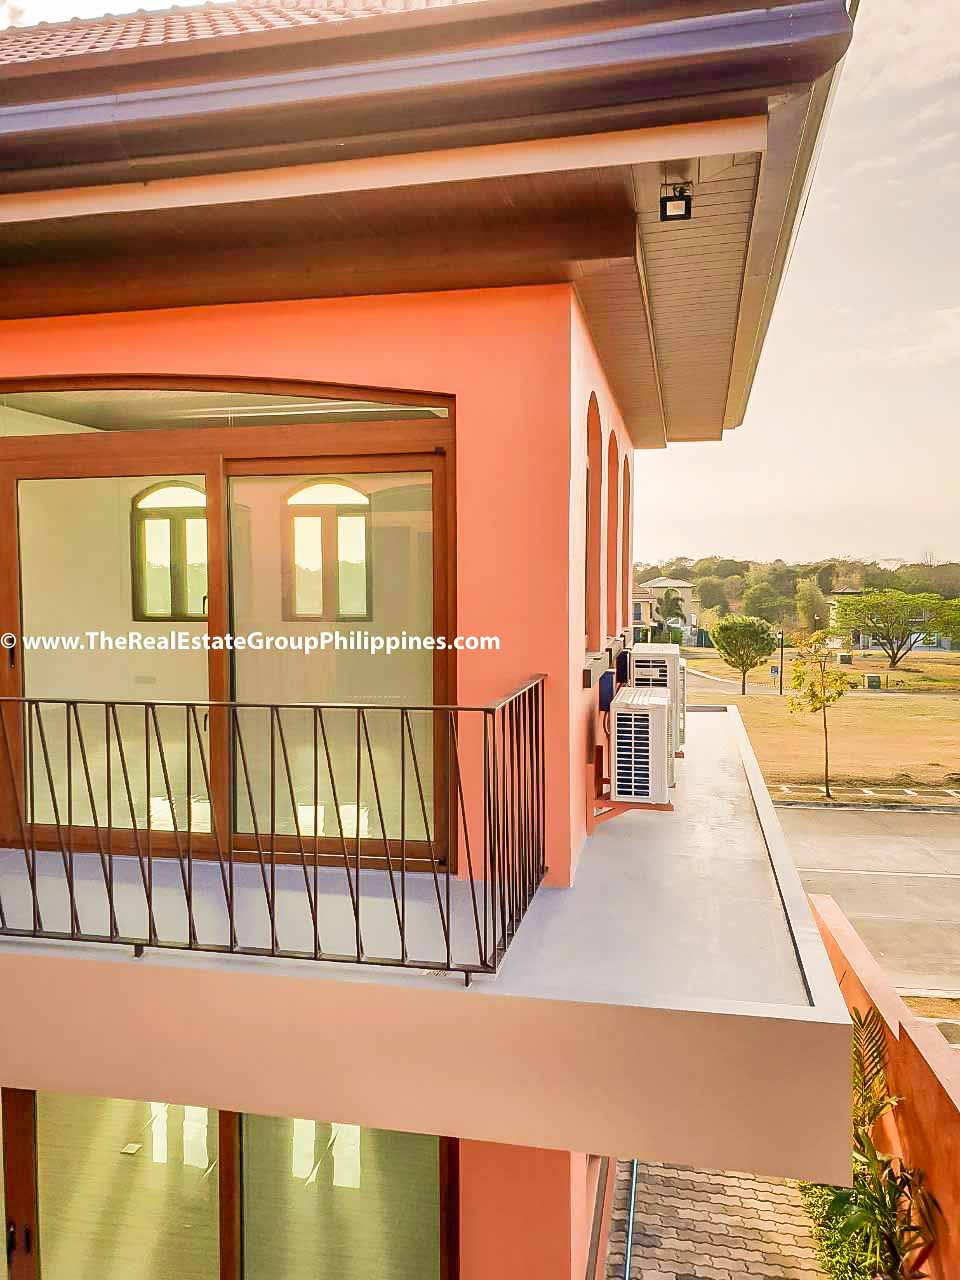 4 Bedrooms House For Rent, Portofino South, Las Piñas City-6